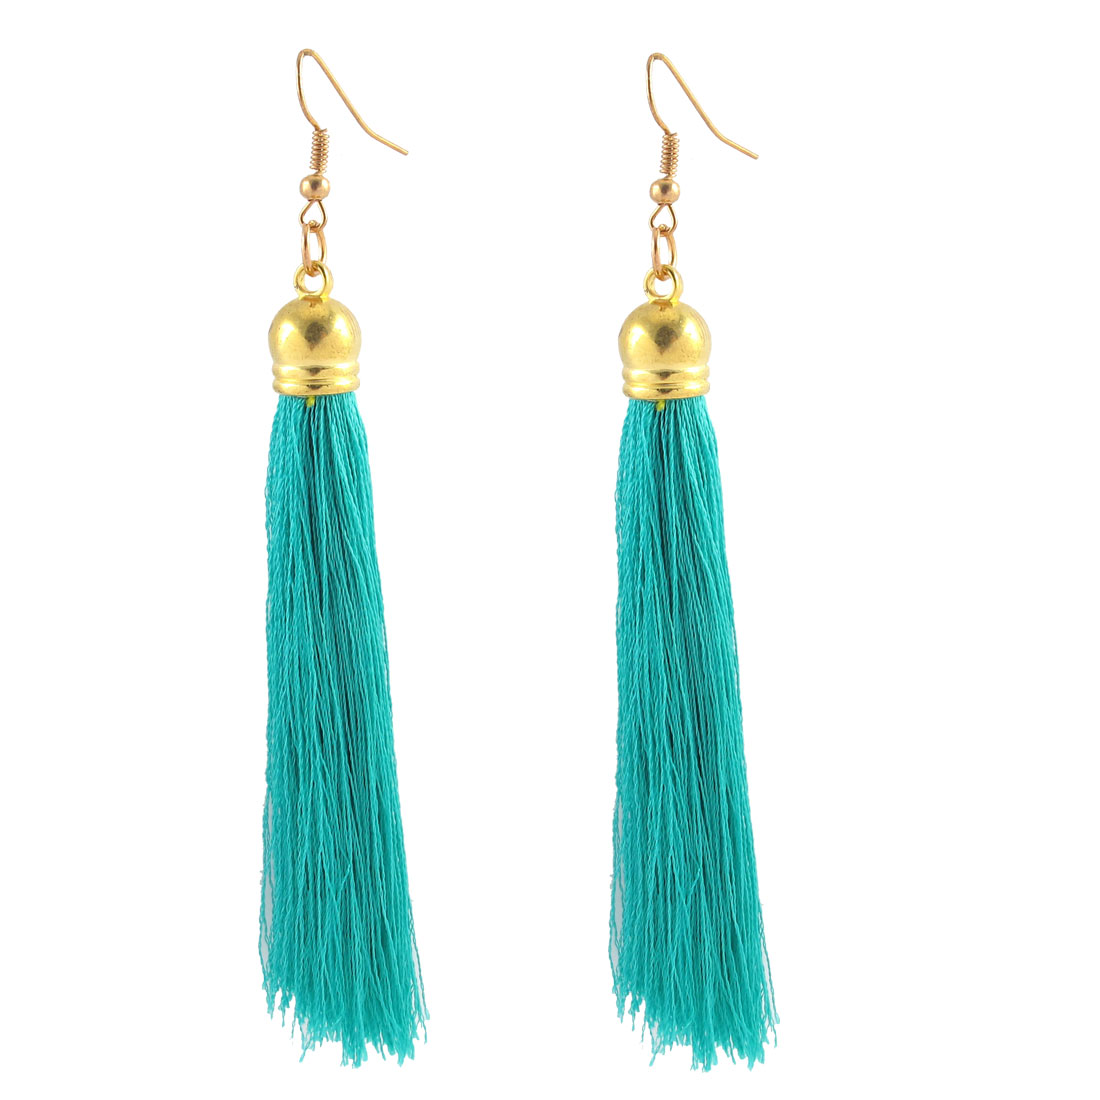 Woman Long Tassel Fringe Boho Style Hanging Fish Hook Earrings Dangle Pair Teal Blue